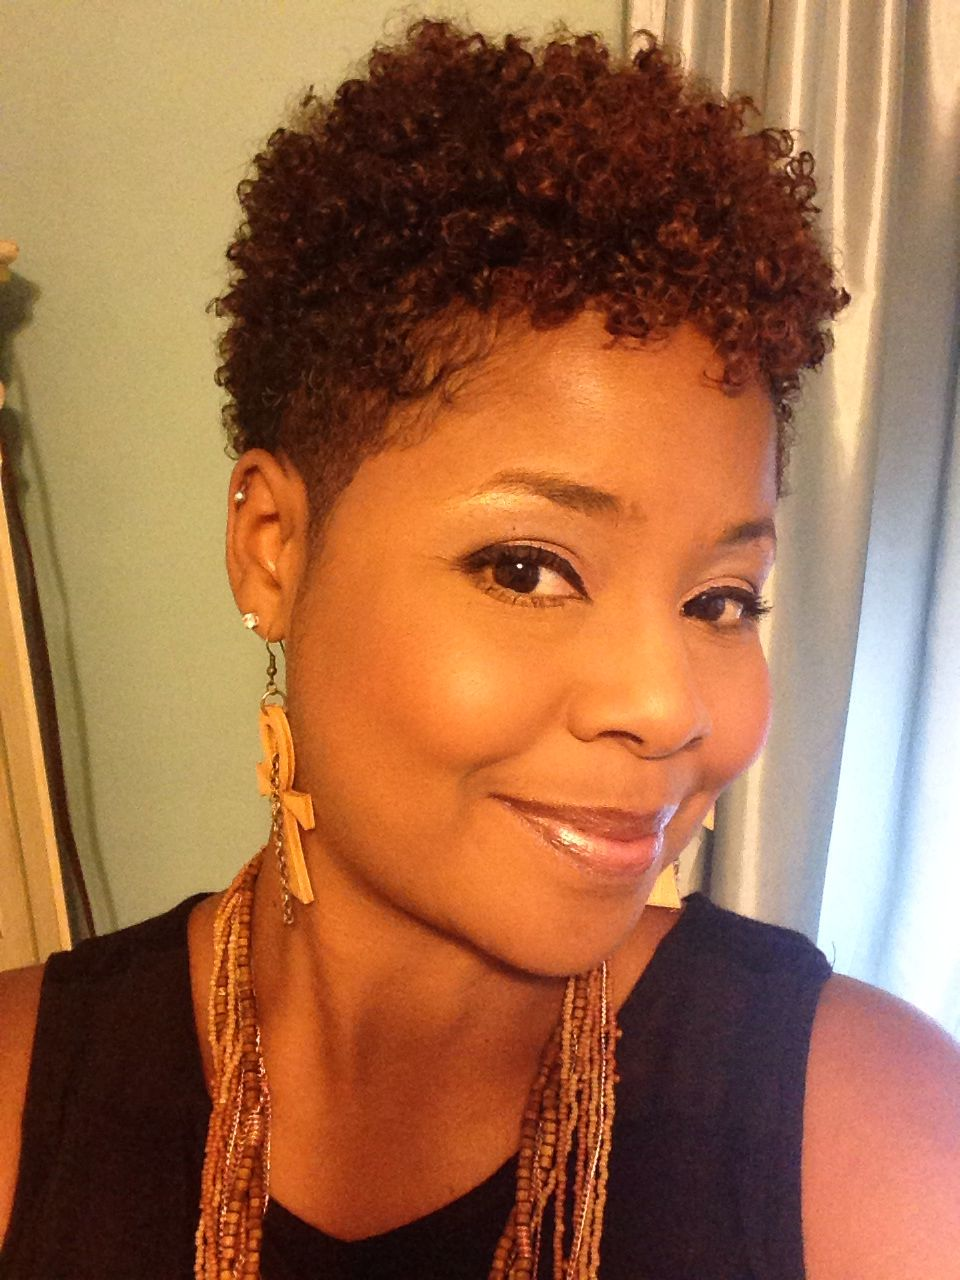 styles for natural short hair freshly cut faux hawk ankh earrings courtesy of 1767 | b7b38c571ad478a21c1f6572978b223a